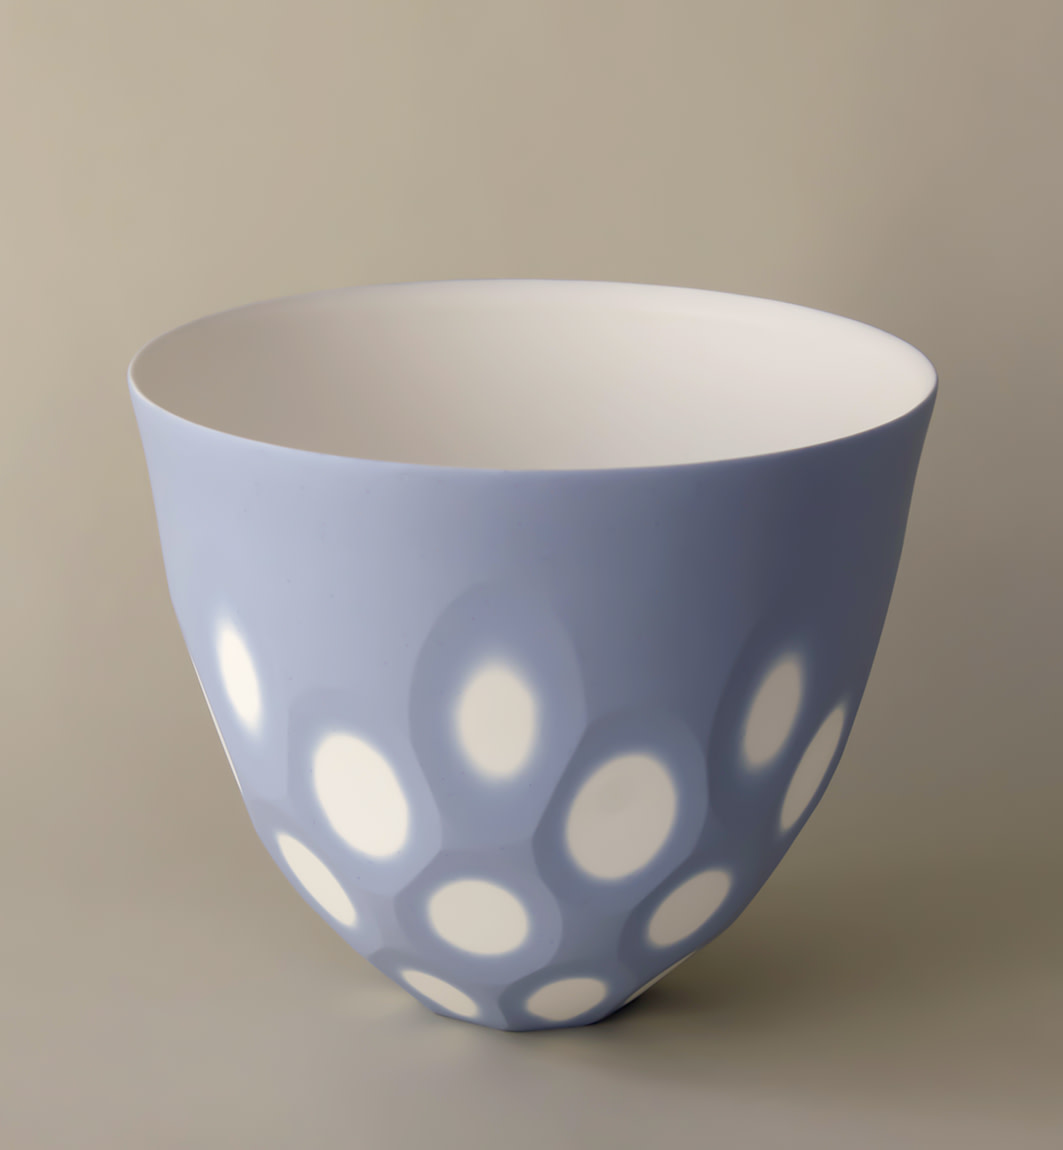 "<span class=""link fancybox-details-link""><a href=""/artists/60-sasha-wardell/works/7314-sasha-wardell-medium-space-bowl-lilac-2020/"">View Detail Page</a></span><div class=""artist""><strong>Sasha Wardell</strong></div> b. 1956 <div class=""title""><em>Medium Space Bowl Lilac</em>, 2020</div> <div class=""medium"">porcelain</div> <div class=""dimensions"">h. 14 x dia. 18 cm </div><div class=""price"">£200.00</div><div class=""copyright_line"">Ownart: £20 x 10 Months, 0% APR</div>"